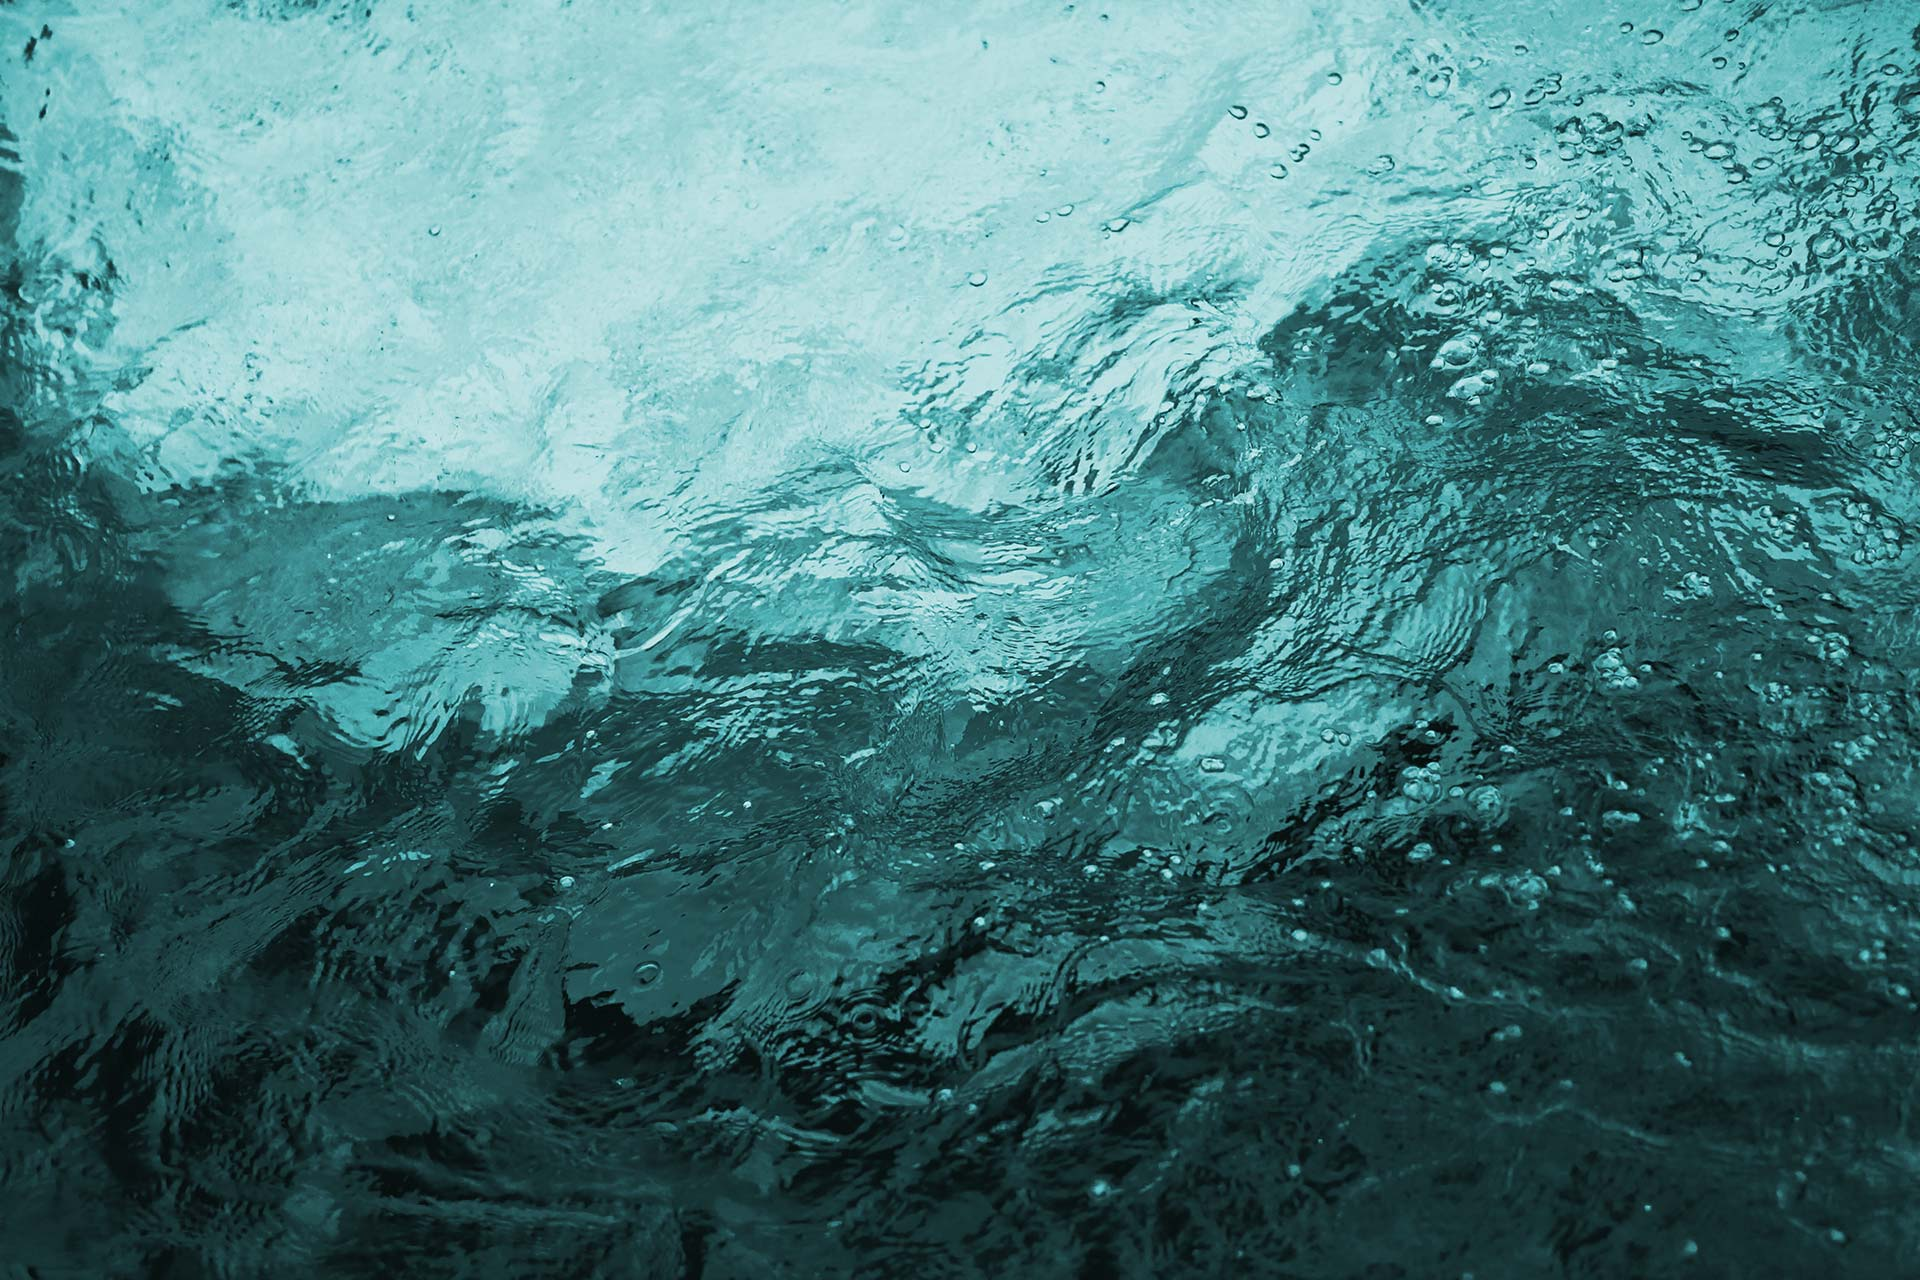 Clean water background